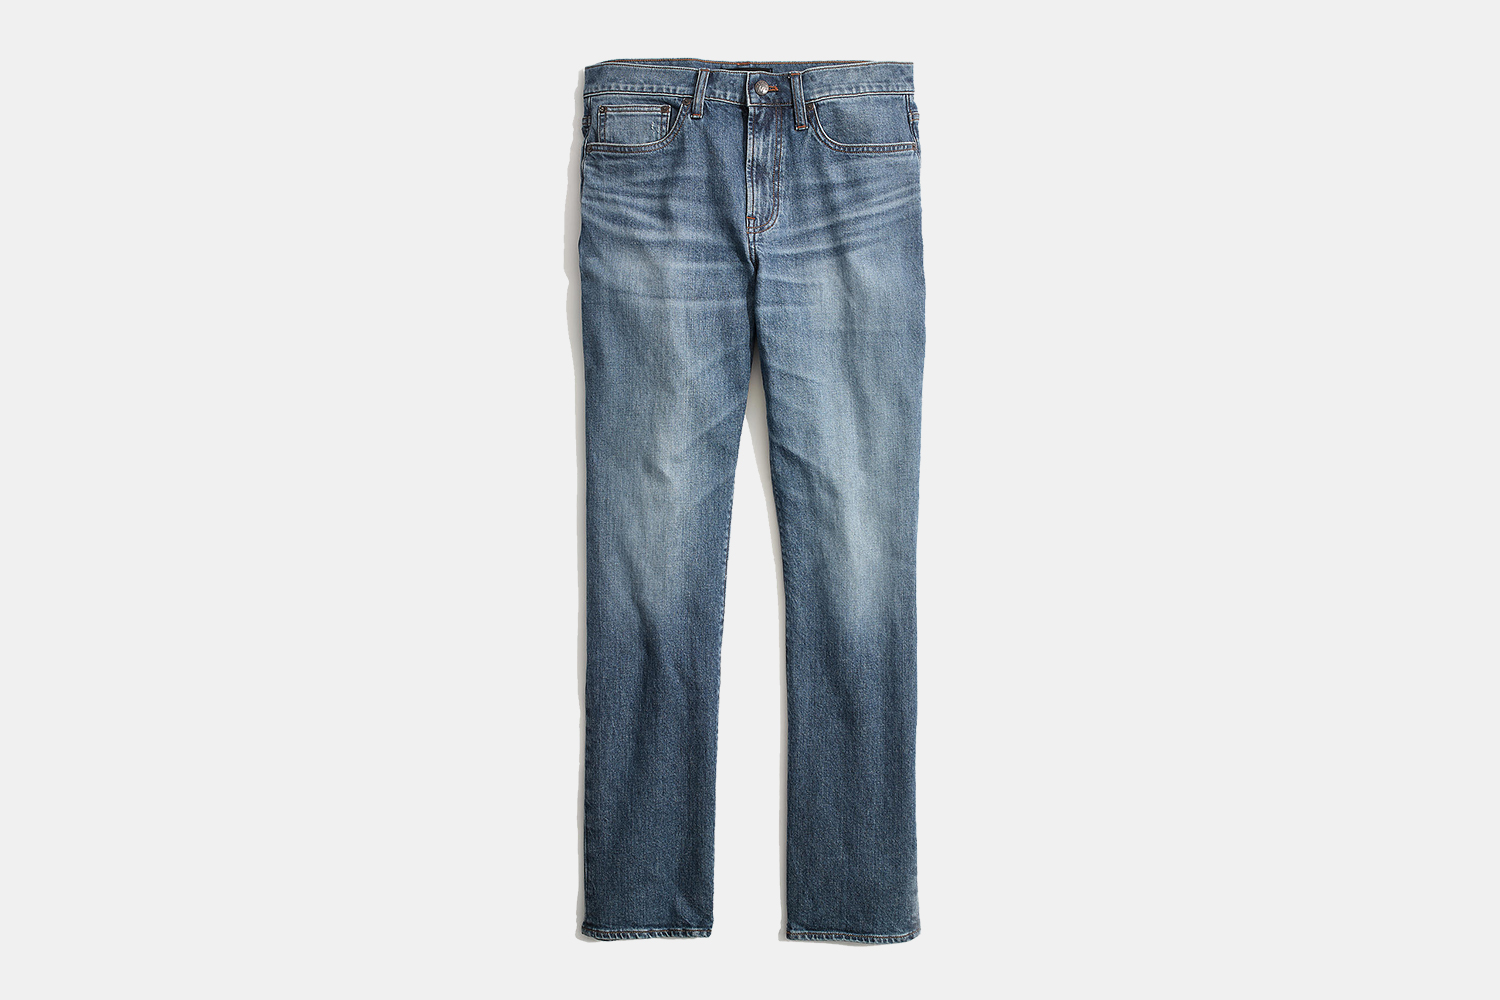 Madewell Men Straight Everyday Flex Jeans: Eco Edition